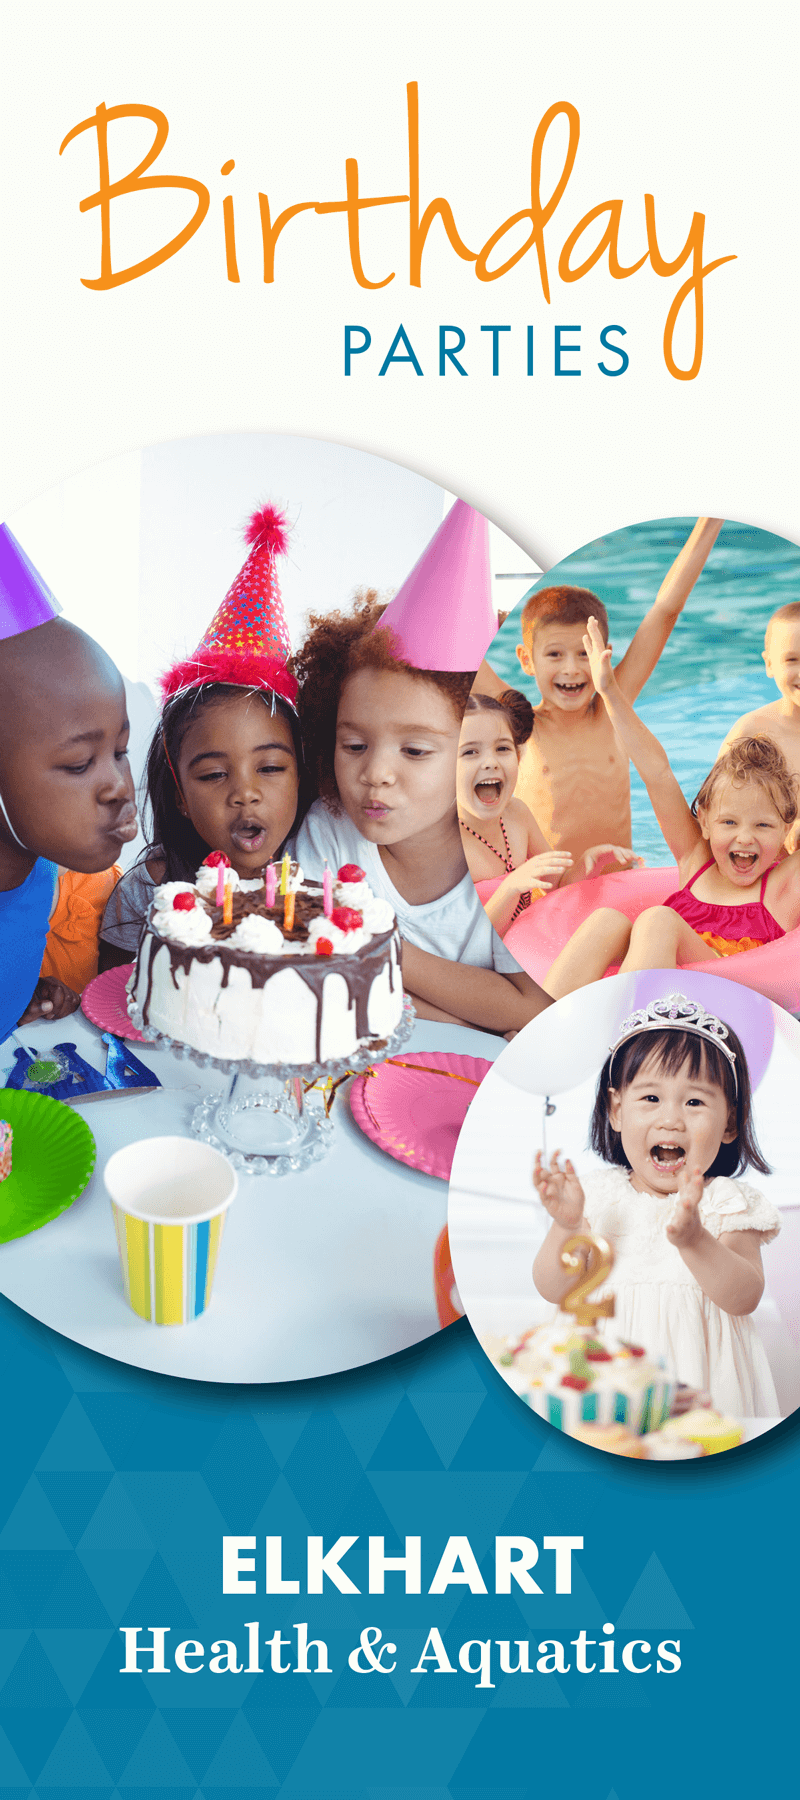 Image of Children's Birthday Parties